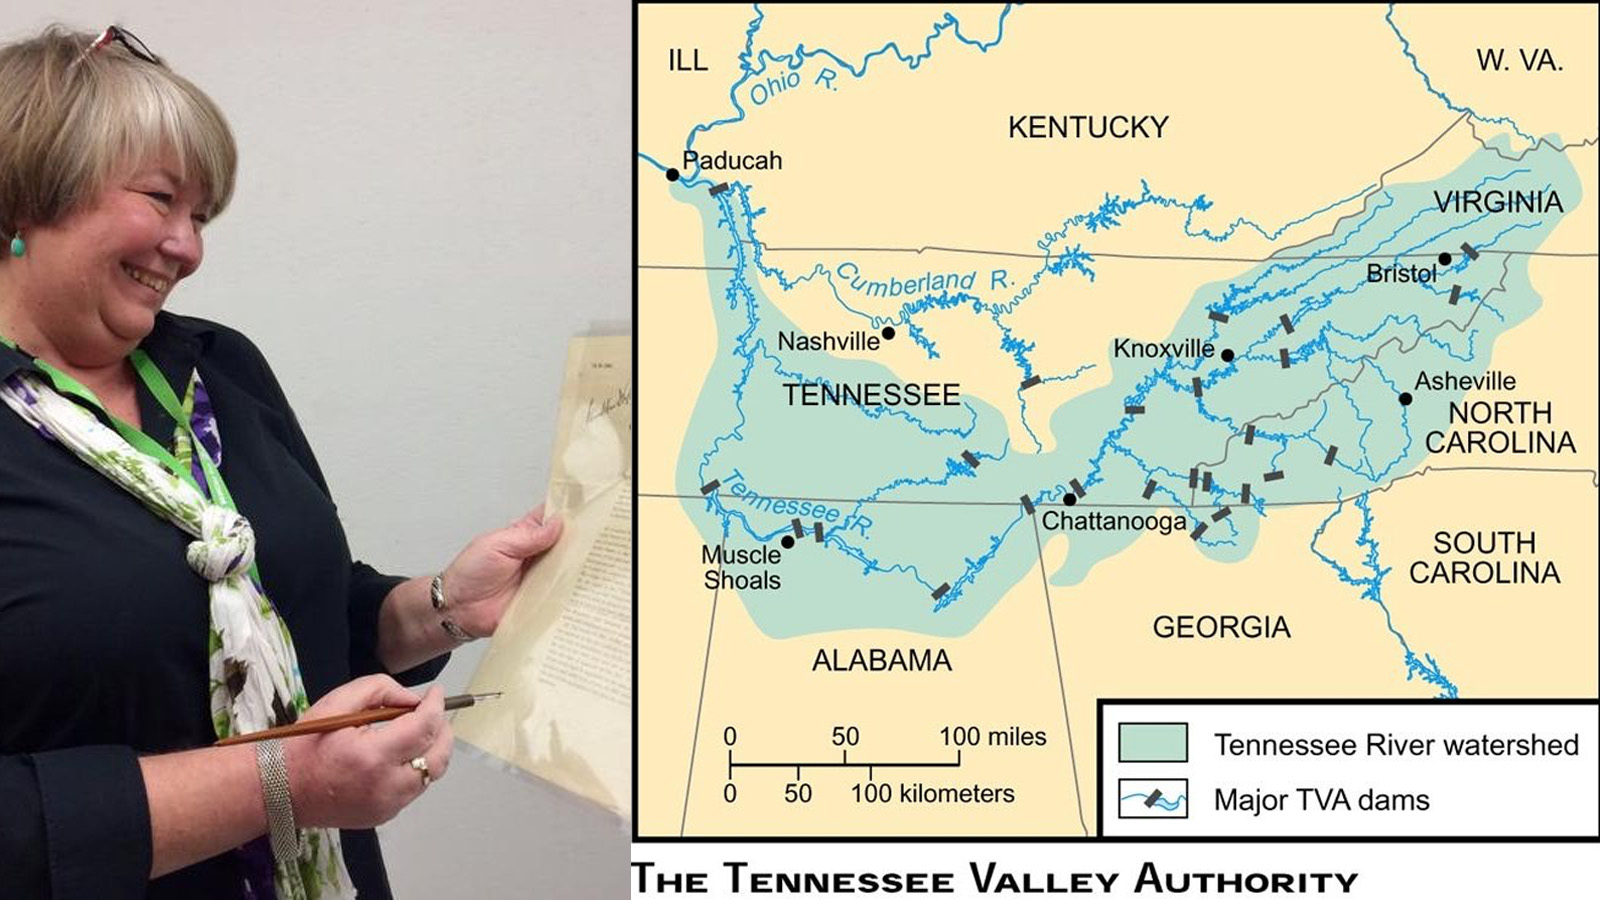 the creation history and impact of the tennessee valley authority tva since 1933 The need to create work for the unemployed, the desire for rural electrification, and the desire to control the annual spring floods on the tennessee river drove federal creation of the tennessee valley authority (tva), the nation's largest public utility, in 1933.